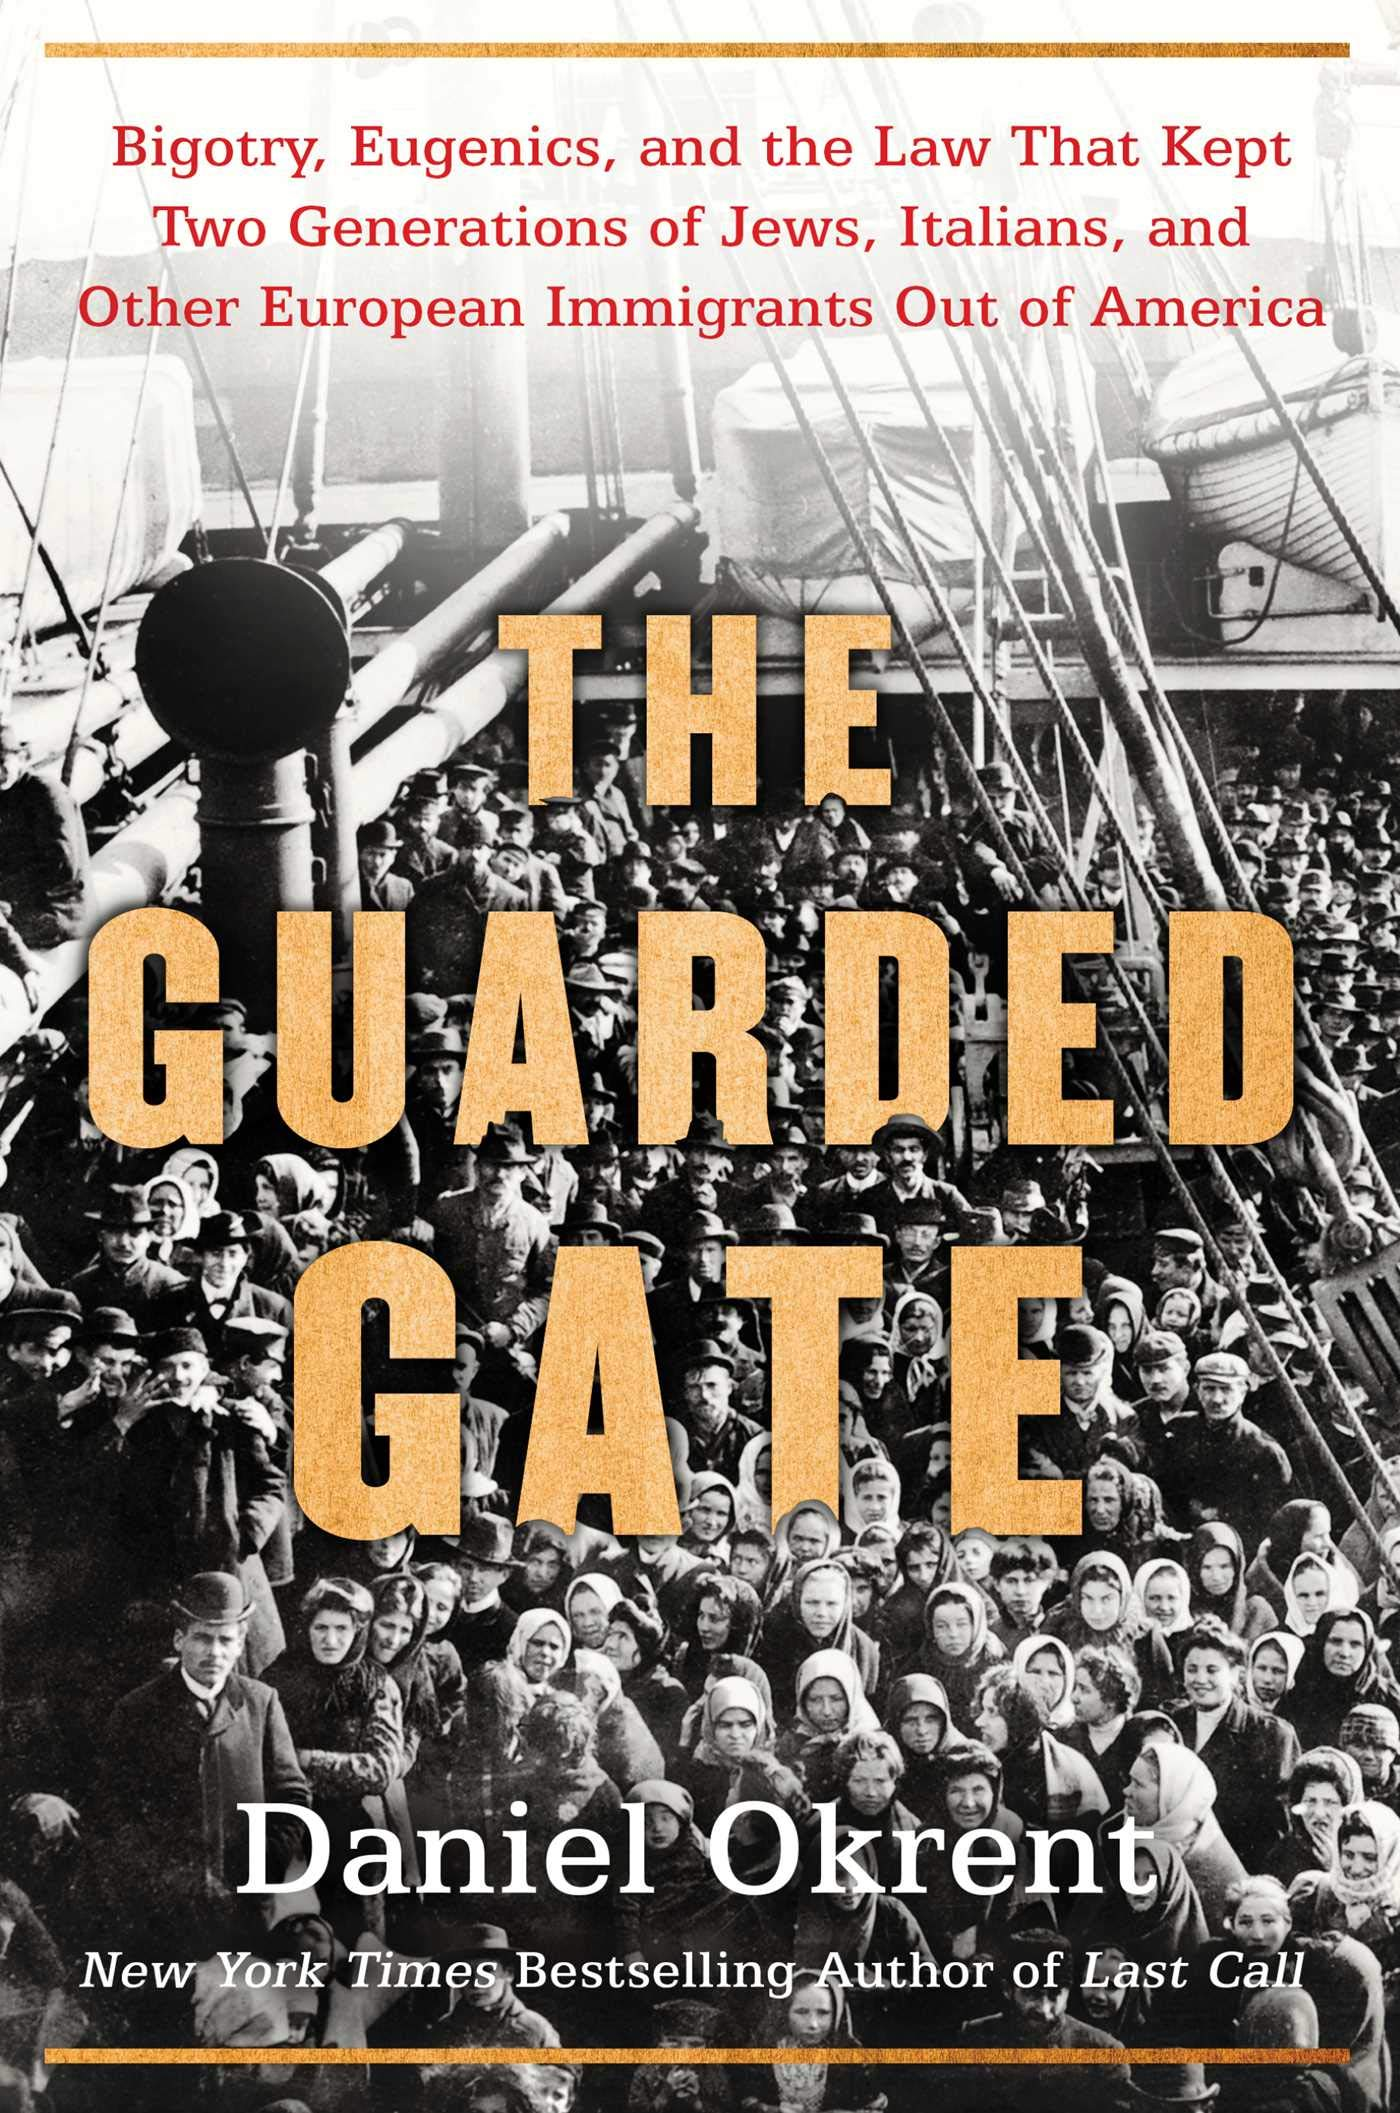 The Guarded Gate: Bigotry, Eugenics and the Law That Kept Two Generations of Jews, Italians, and Other European Immigrants Out of America by Scribner